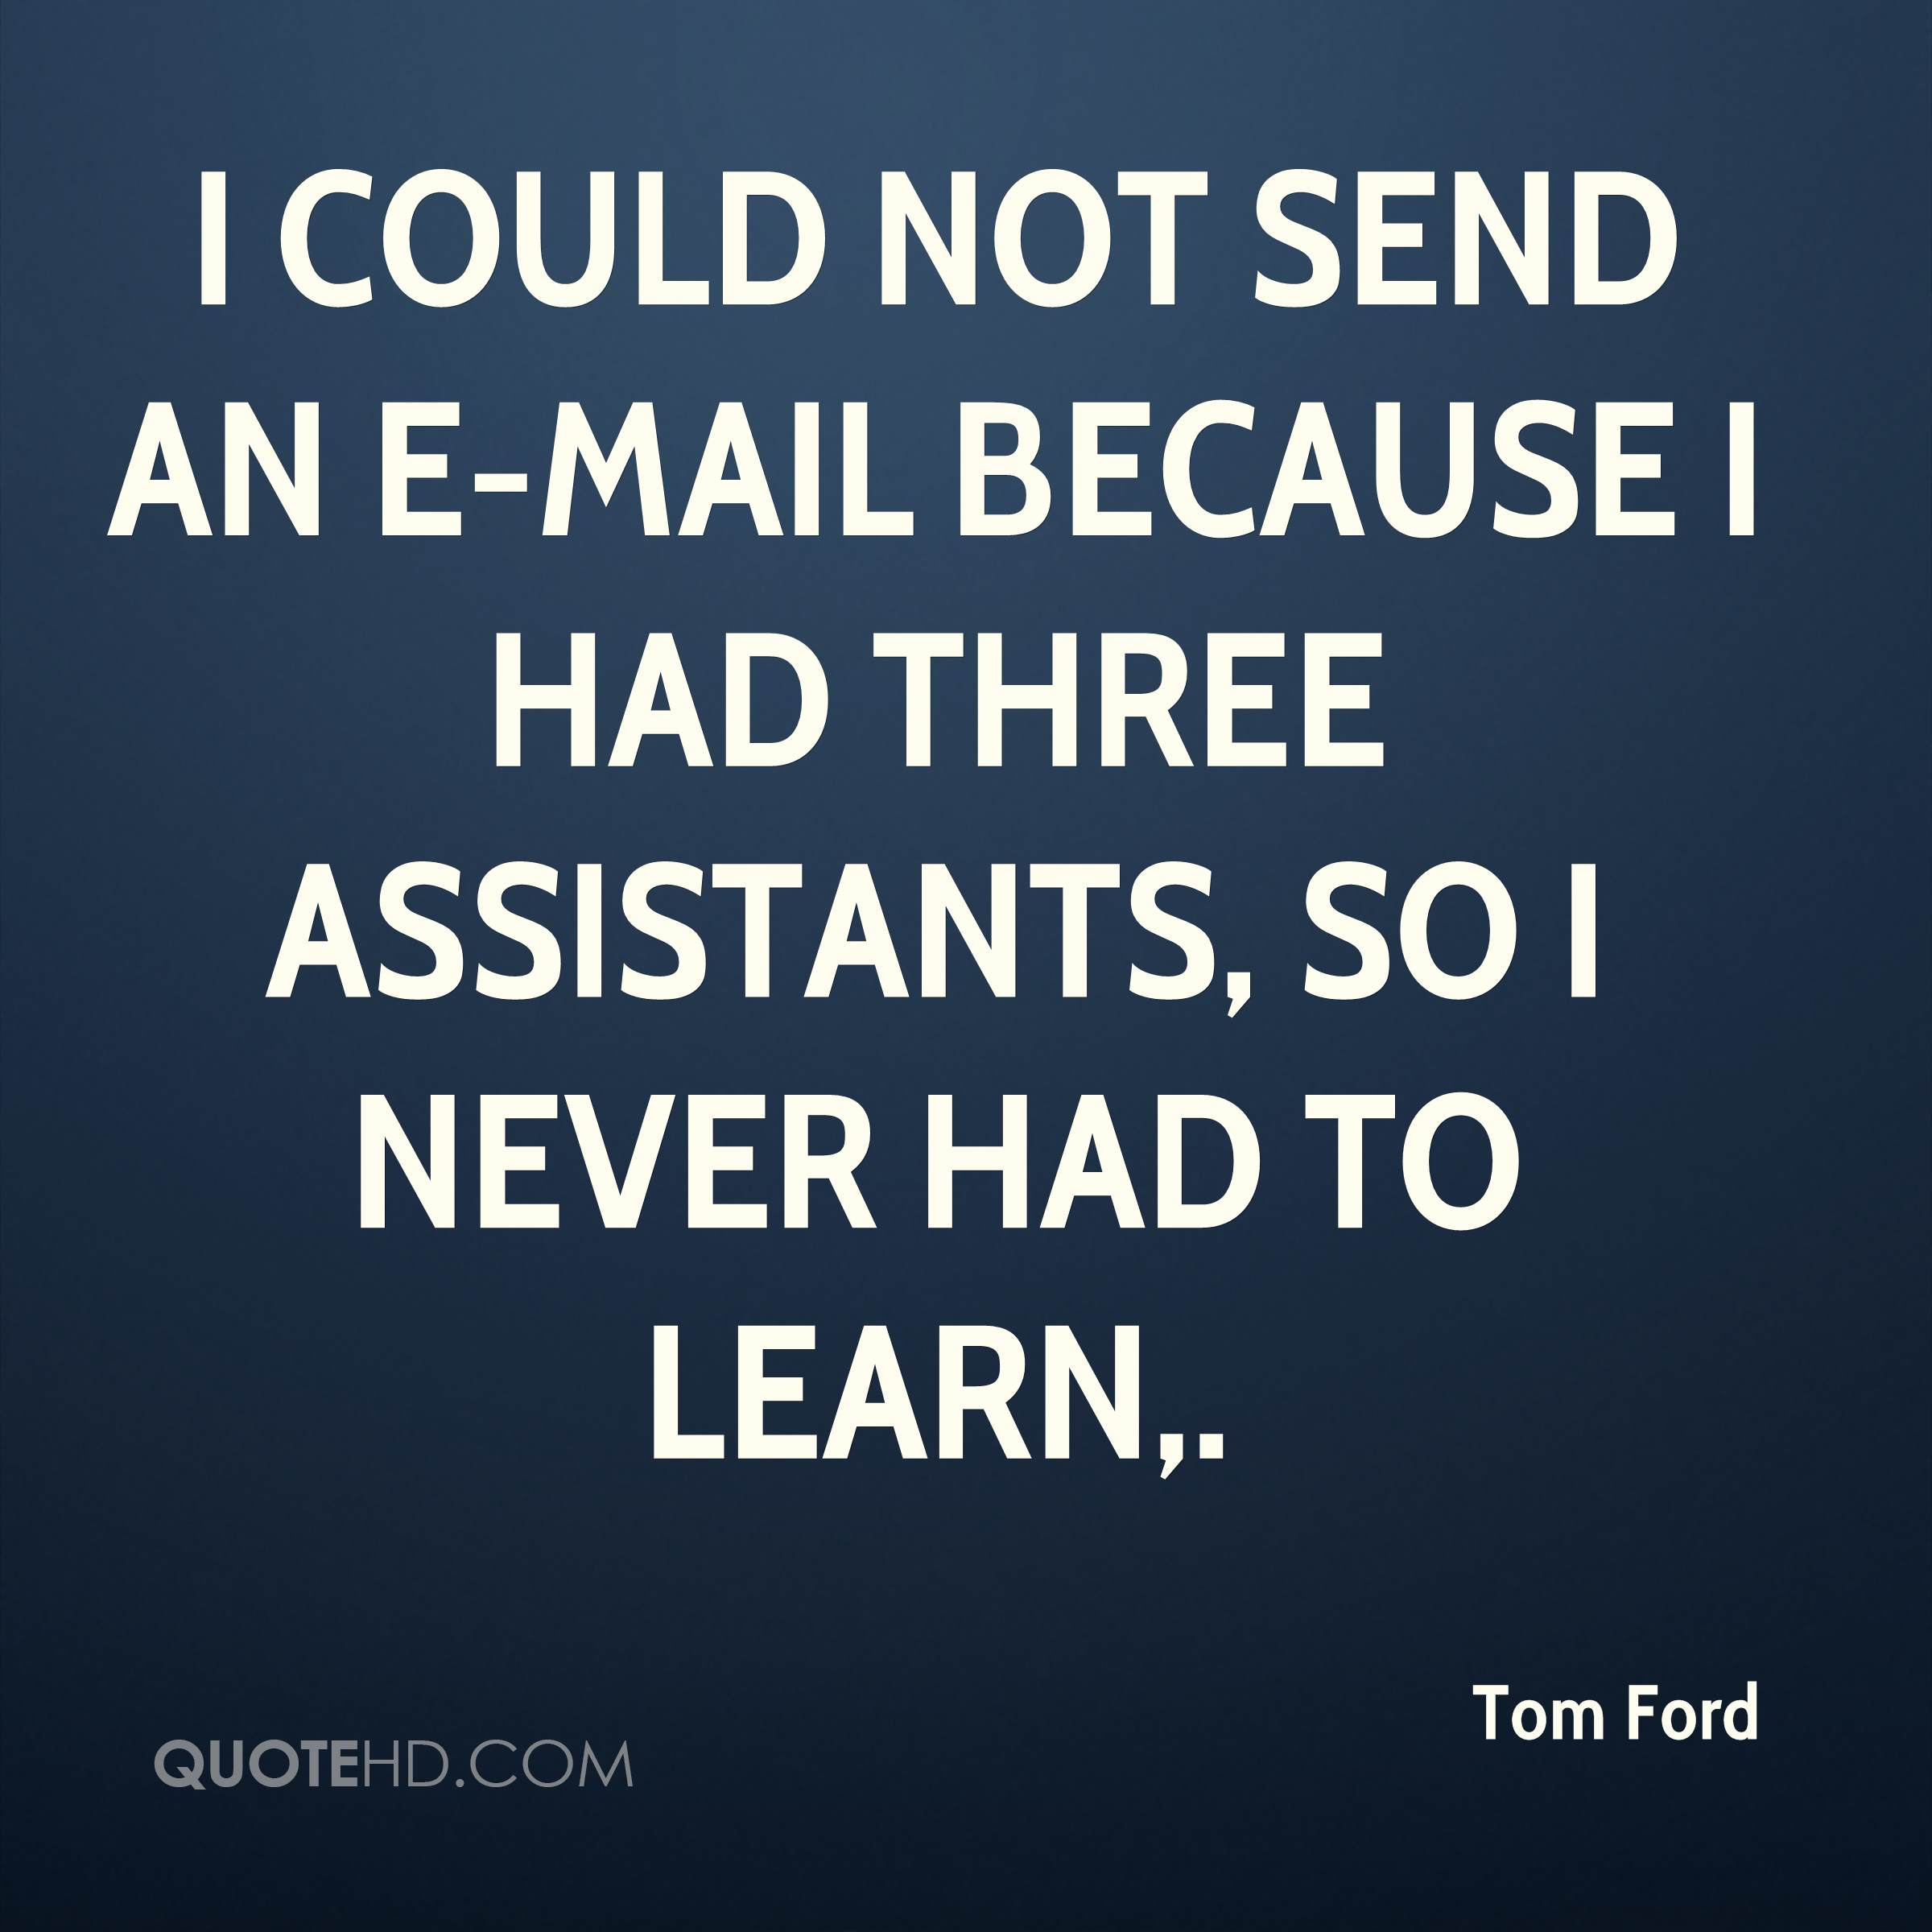 I could not send an e-mail because I had three assistants, so I never had to learn.